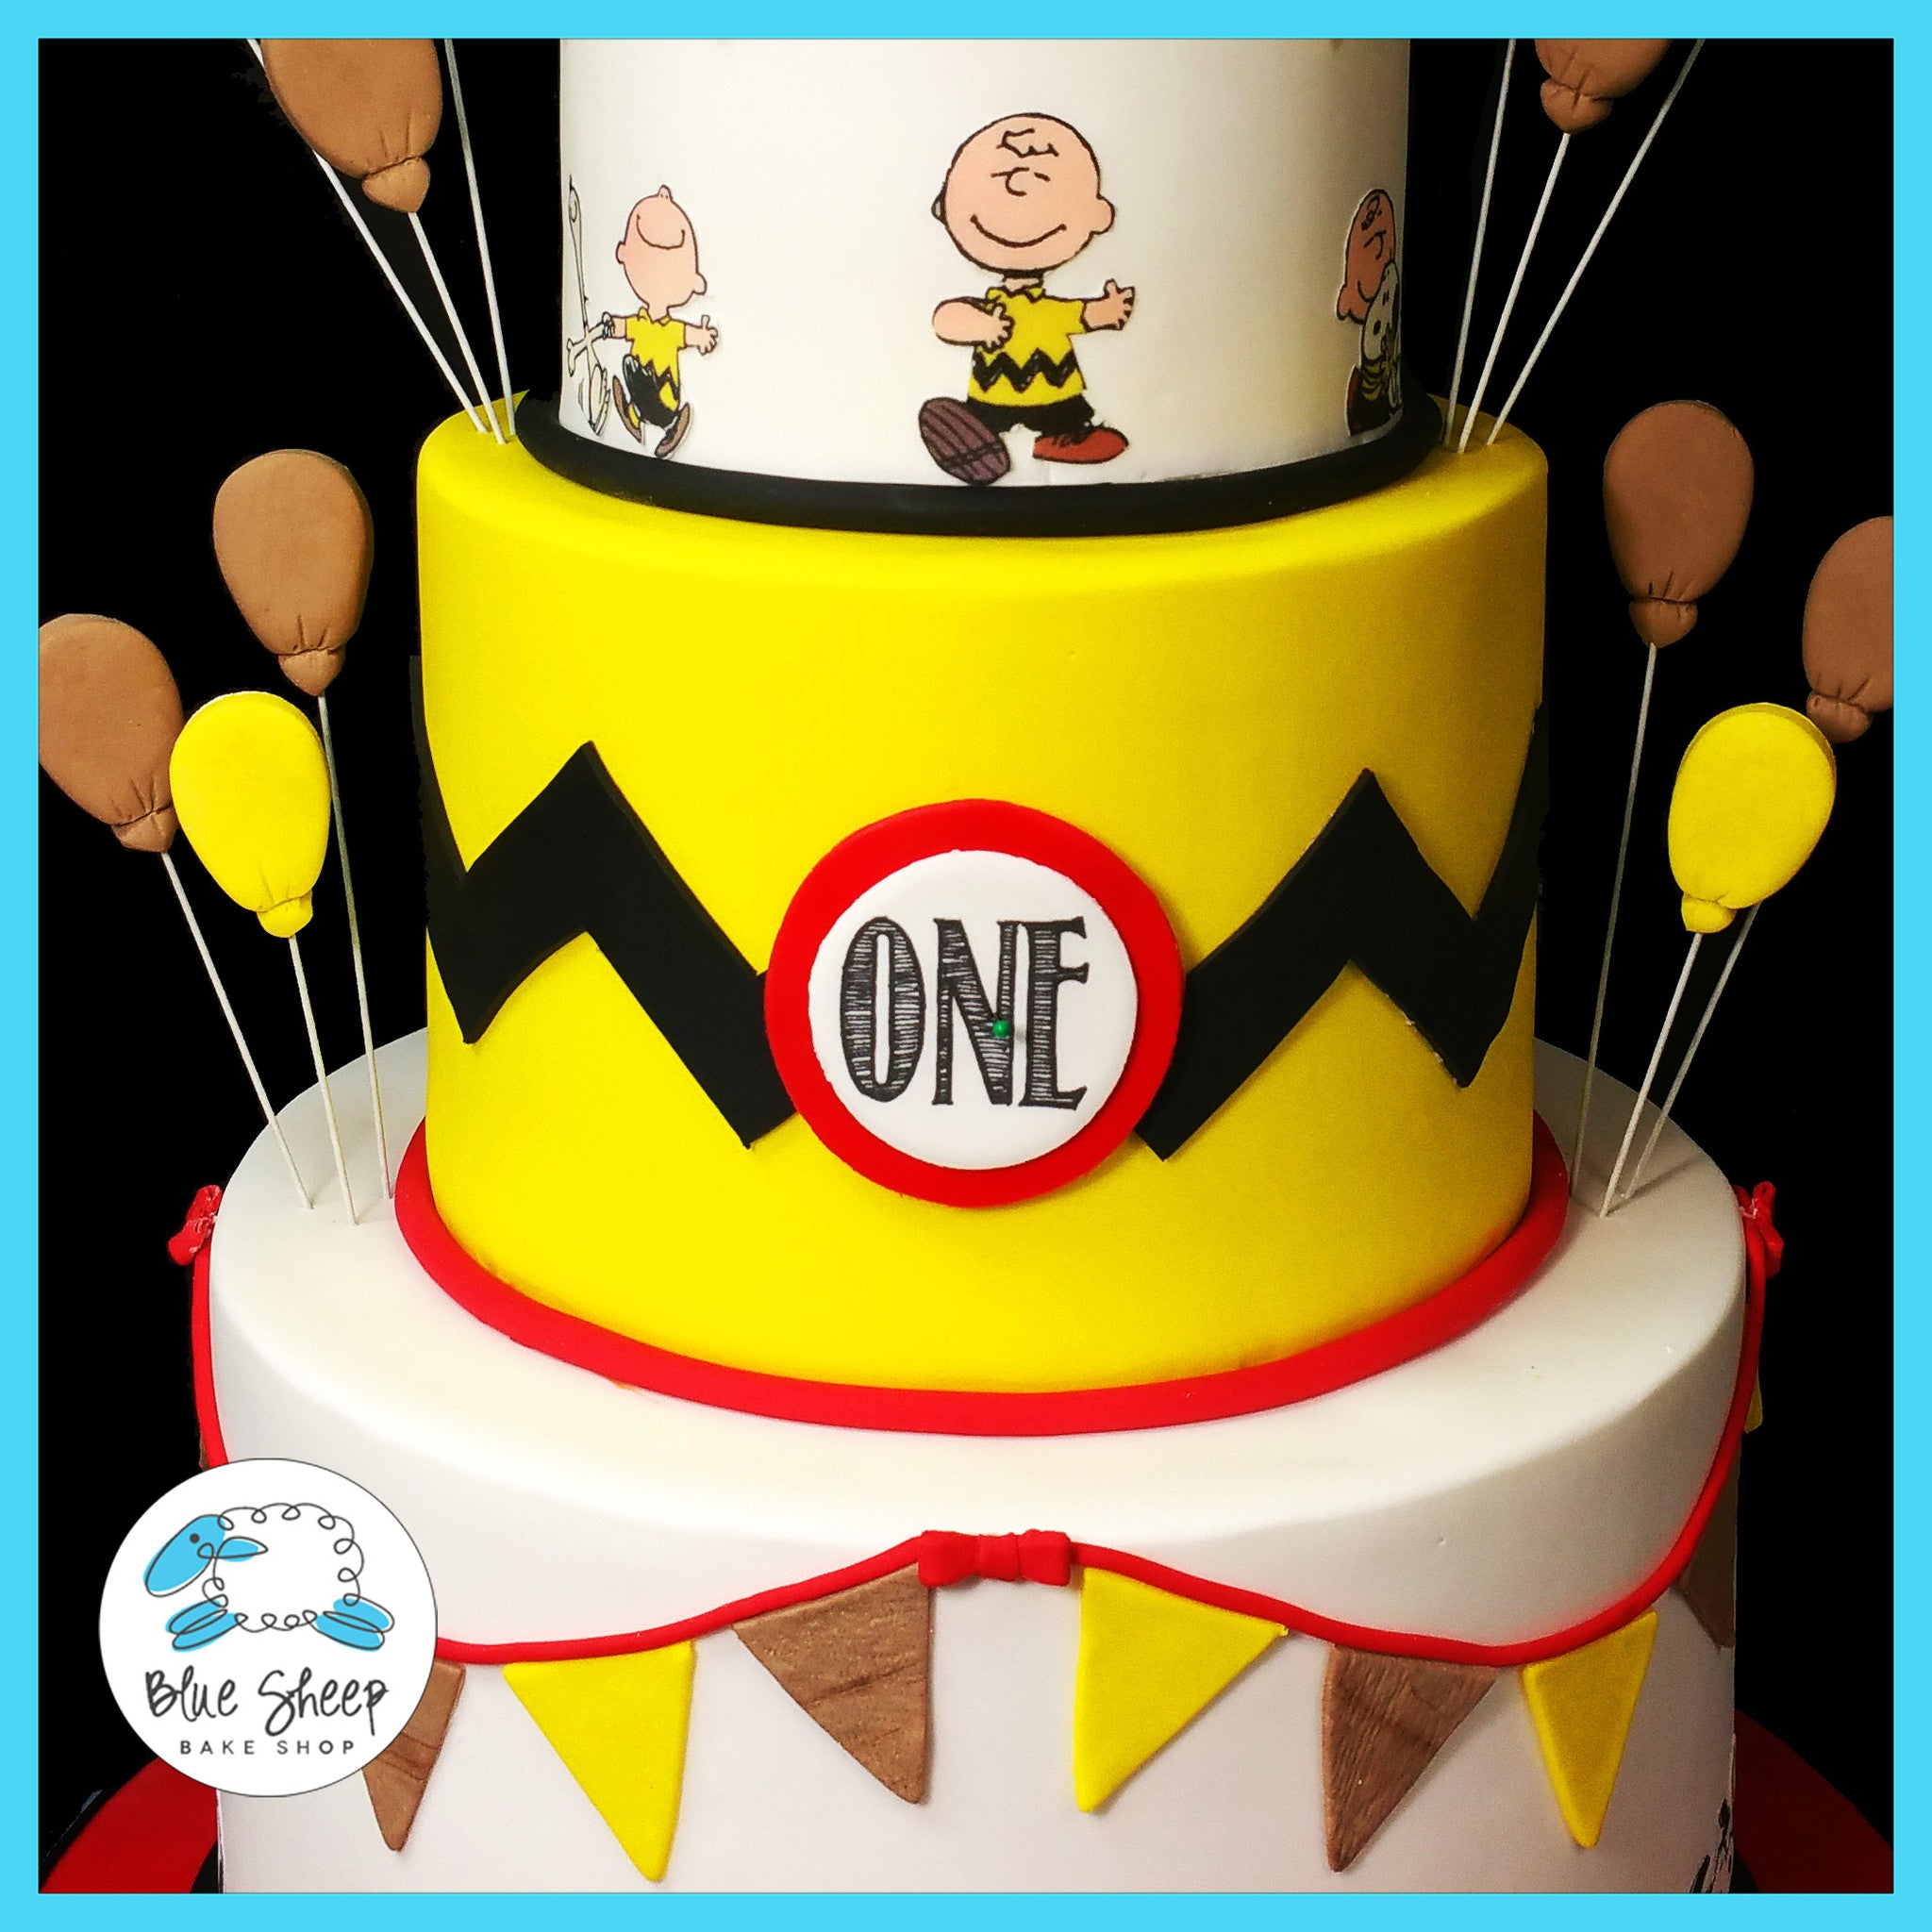 Enjoyable Charlie Brown And Snoopy 1St Birthday Cake Nj Blue Sheep Bake Shop Funny Birthday Cards Online Alyptdamsfinfo